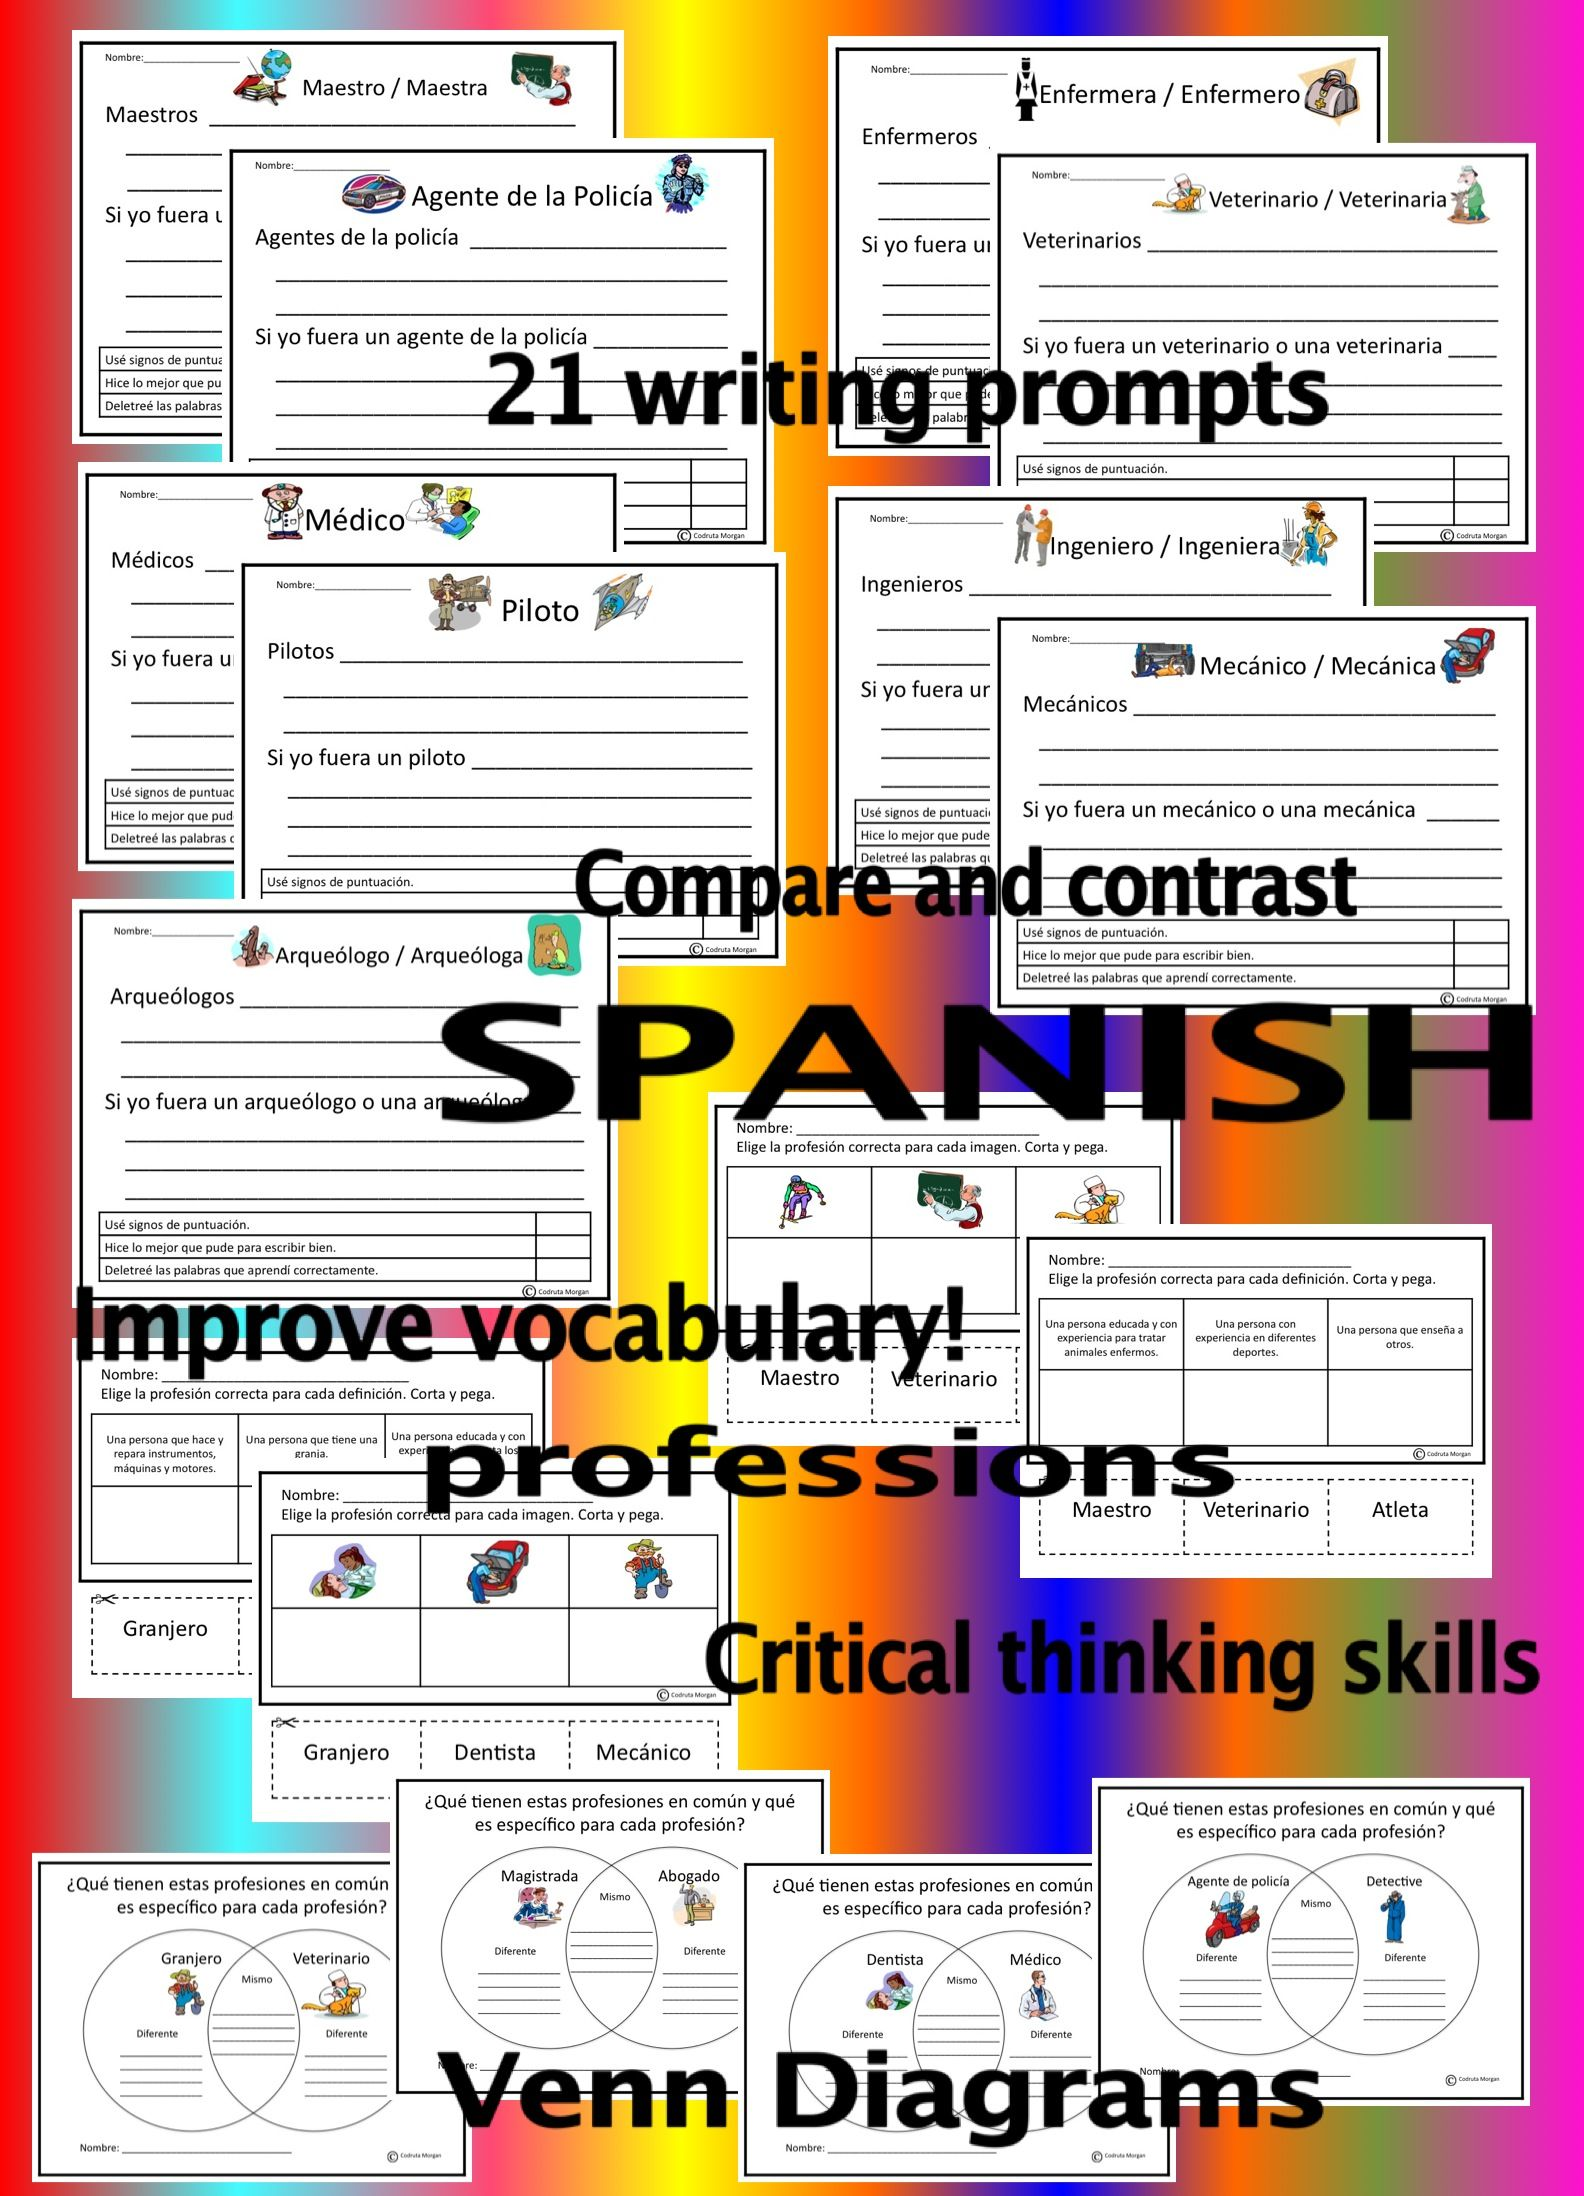 Writing reading interactive activities spanish version spanish writing and reading activities writing prompts venn diagrams learning about professionsjobs matching definitions and professions improving vocabulary ccuart Gallery